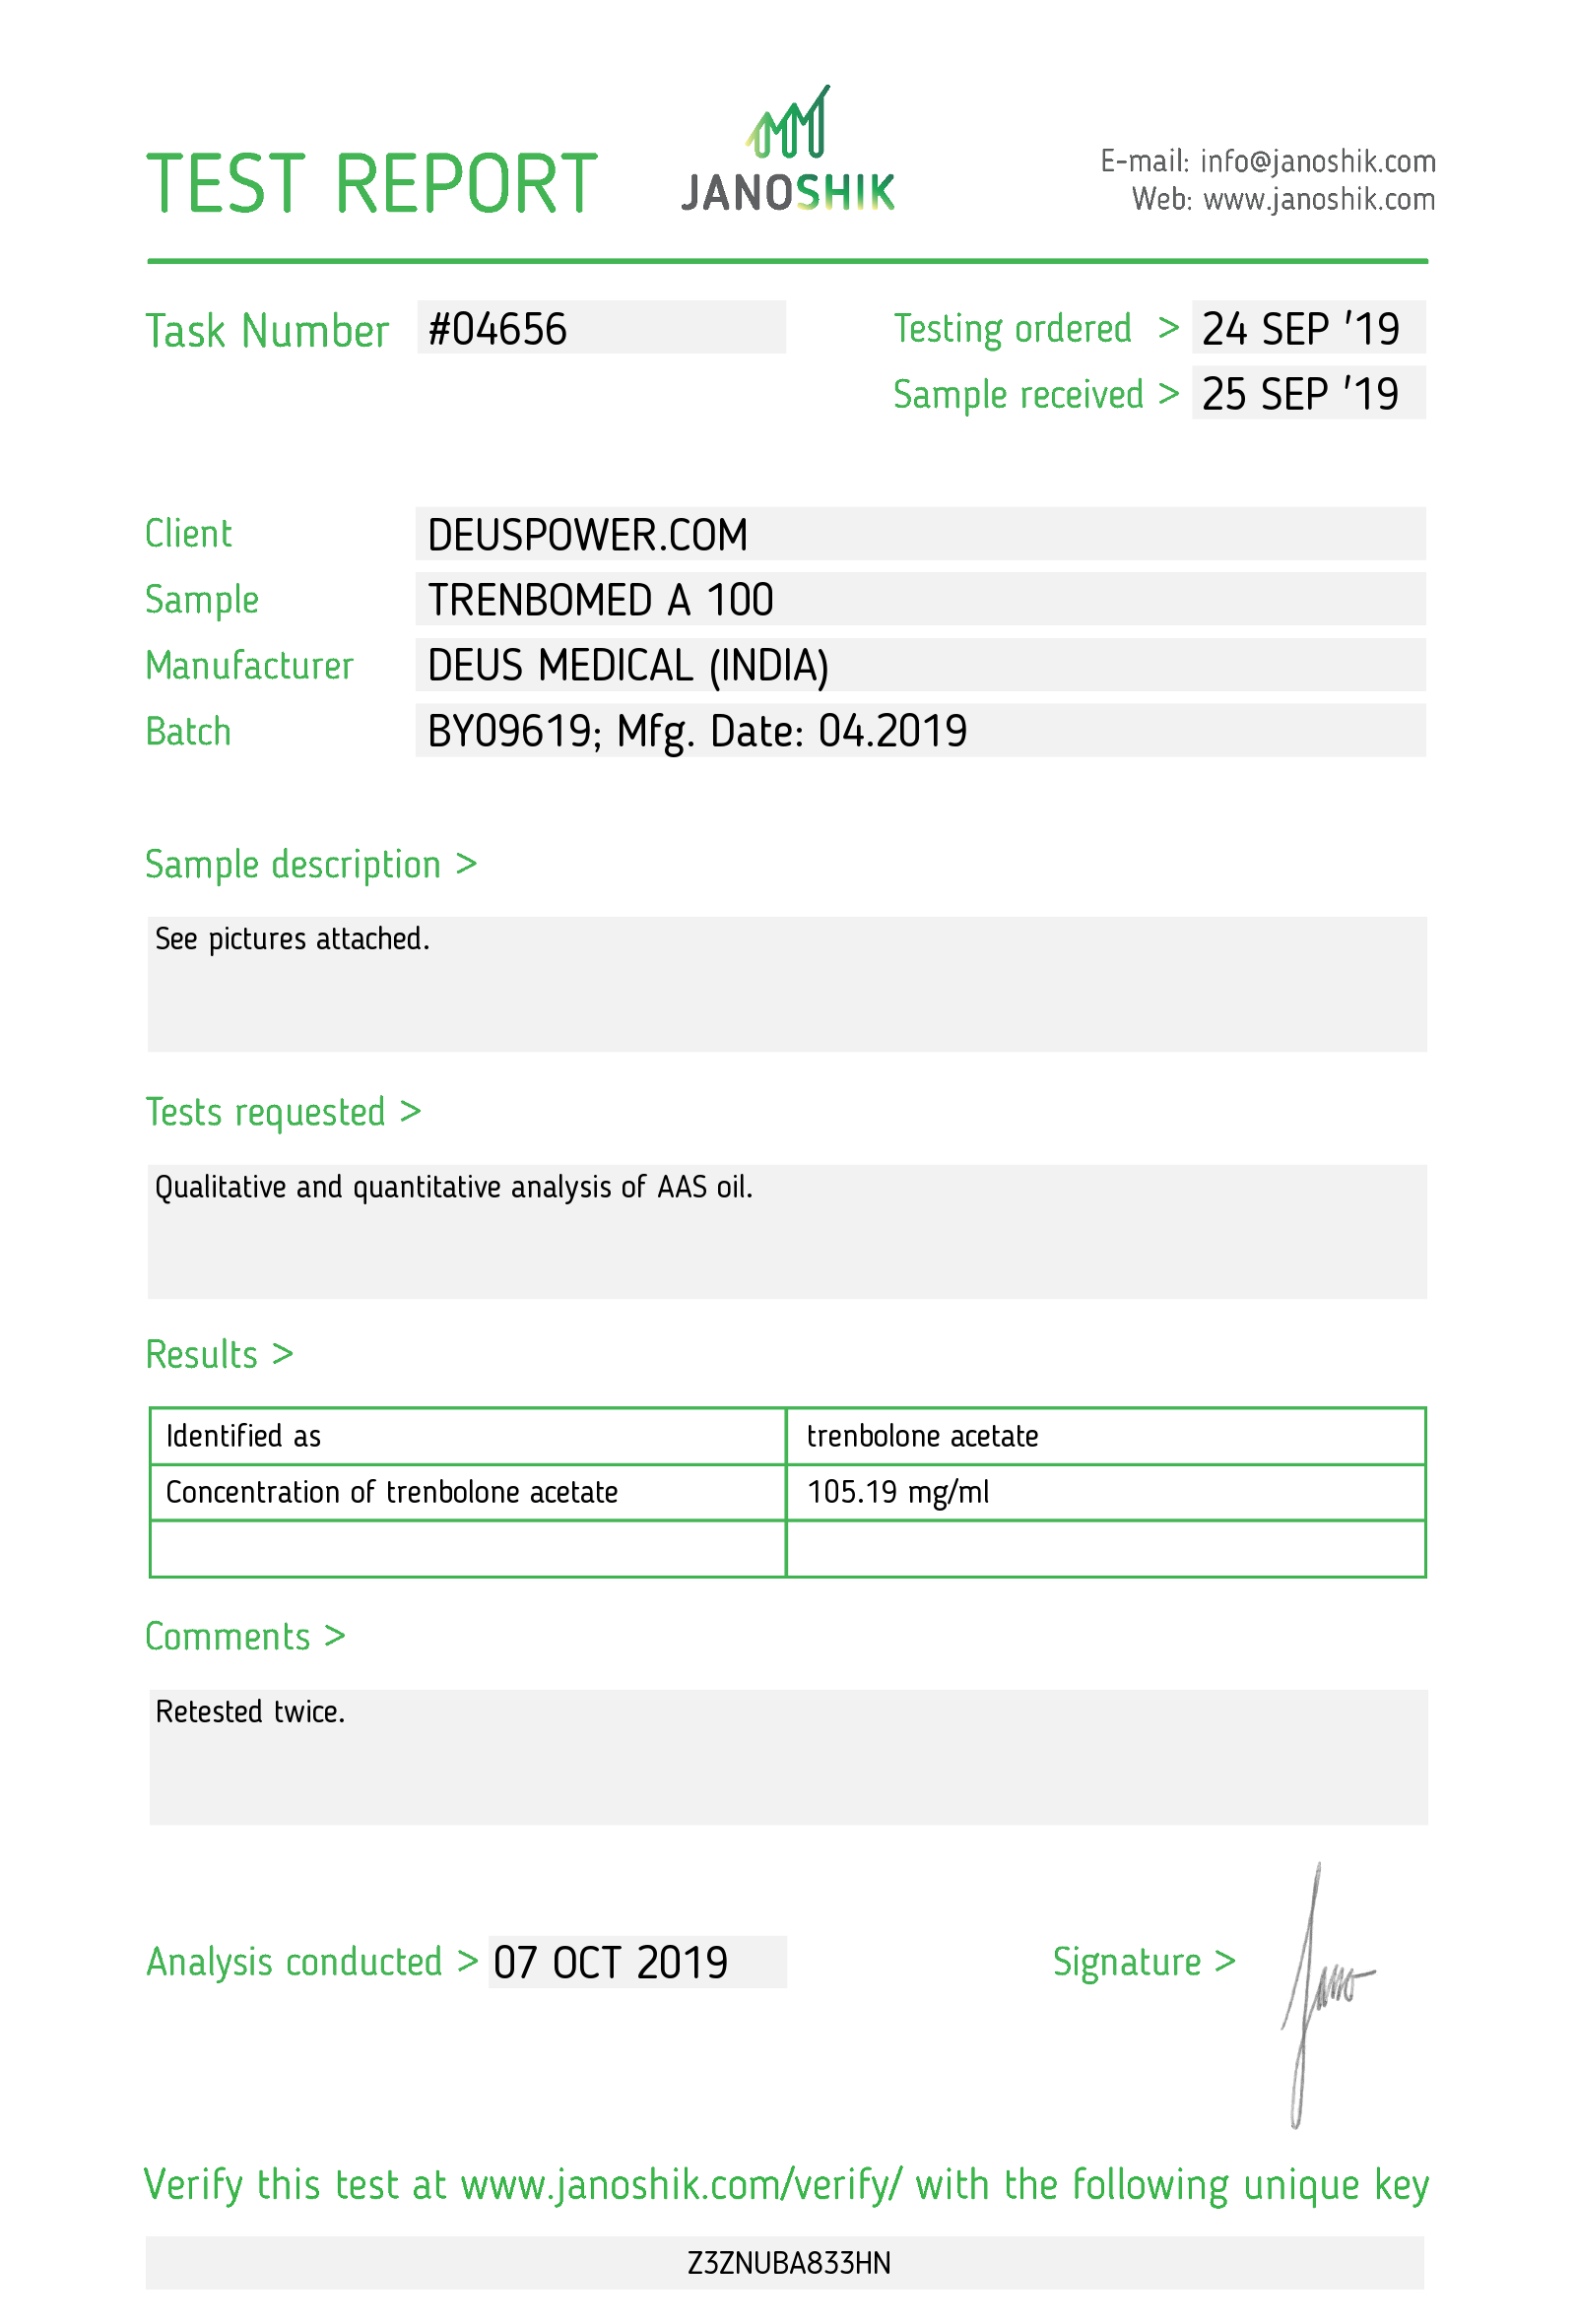 Laboratory Test for Deus Medical TRENBOMED A 100_Test Report.png